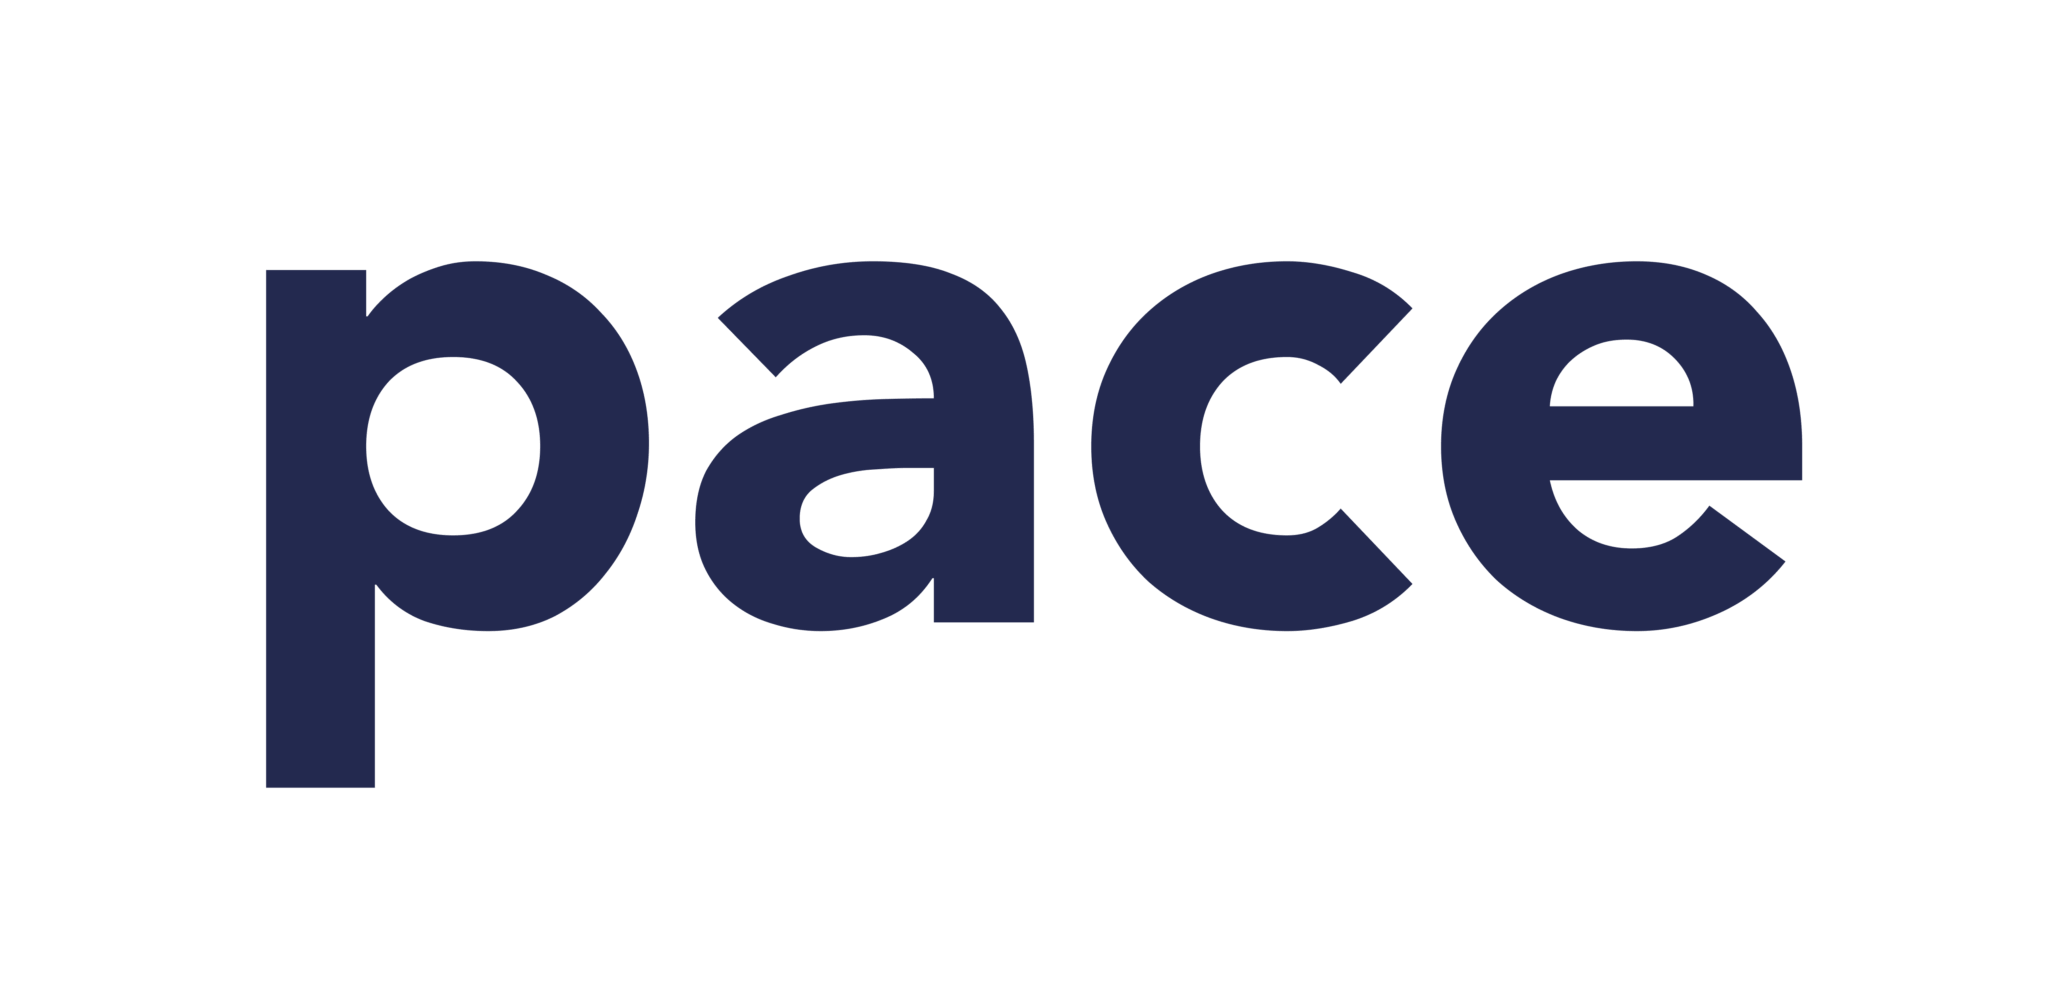 Pace - Who Are We? Interview with Jens Munch